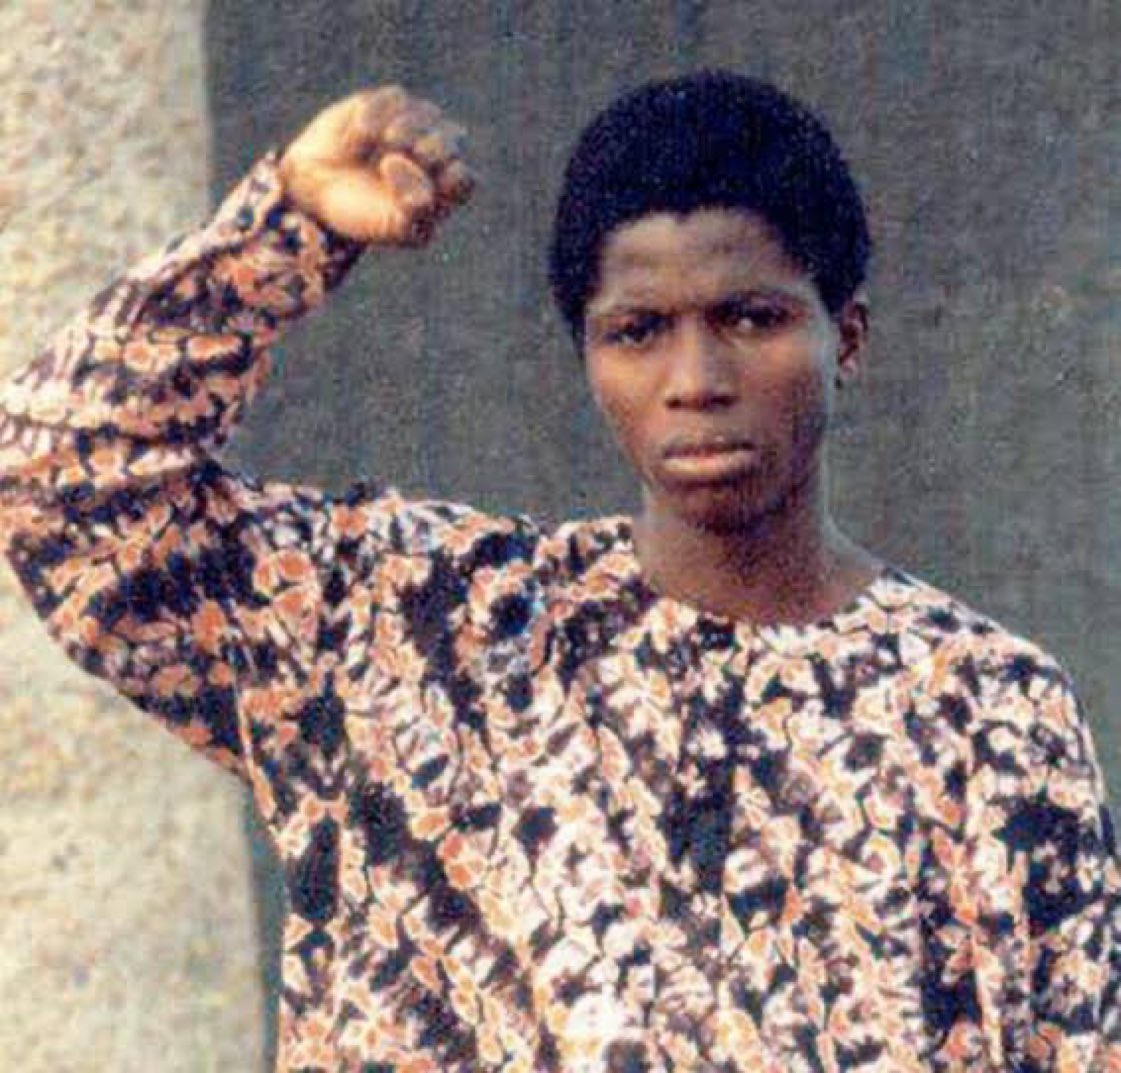 Iwilade aka Africa...... Rest in peace #OAU5 #July10..... Say no to cultism... https://t.co/TjPyfvXpBZ